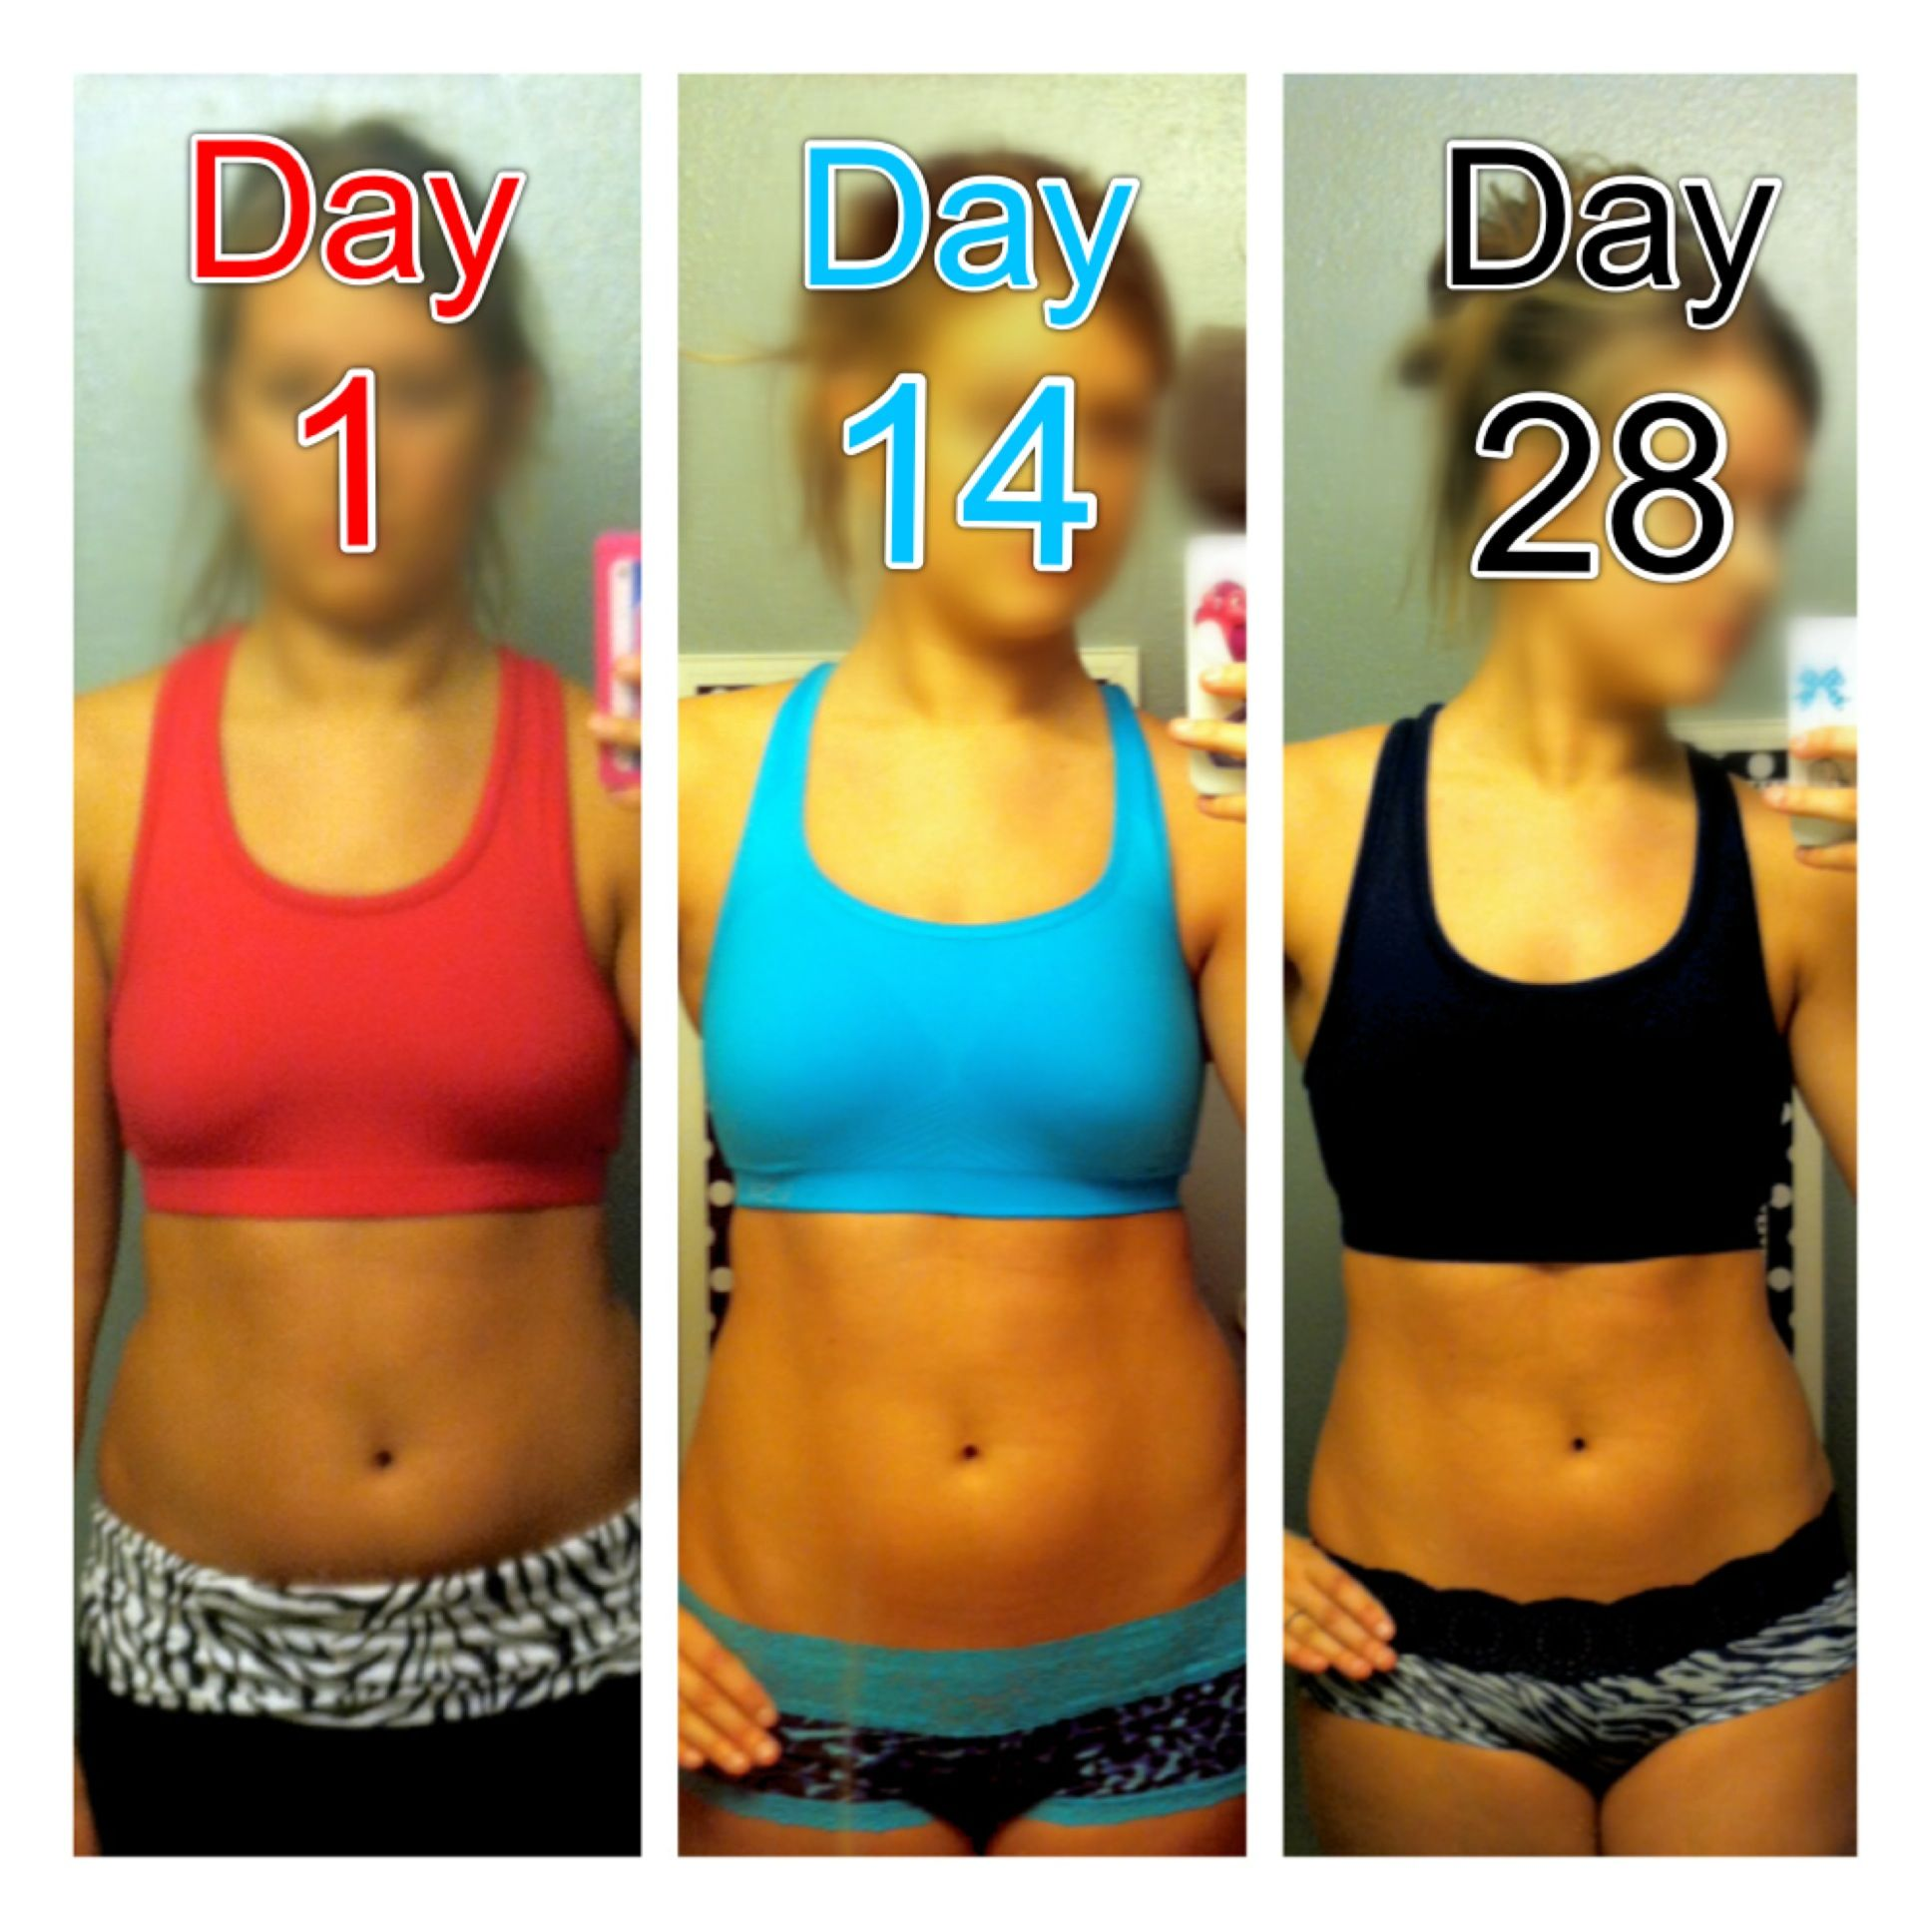 Youlink Day 28 Of Befit A Free 90 Day Workout This Is Only Day 28 And Im So Much More Toned Than I Was This System Is More Of A